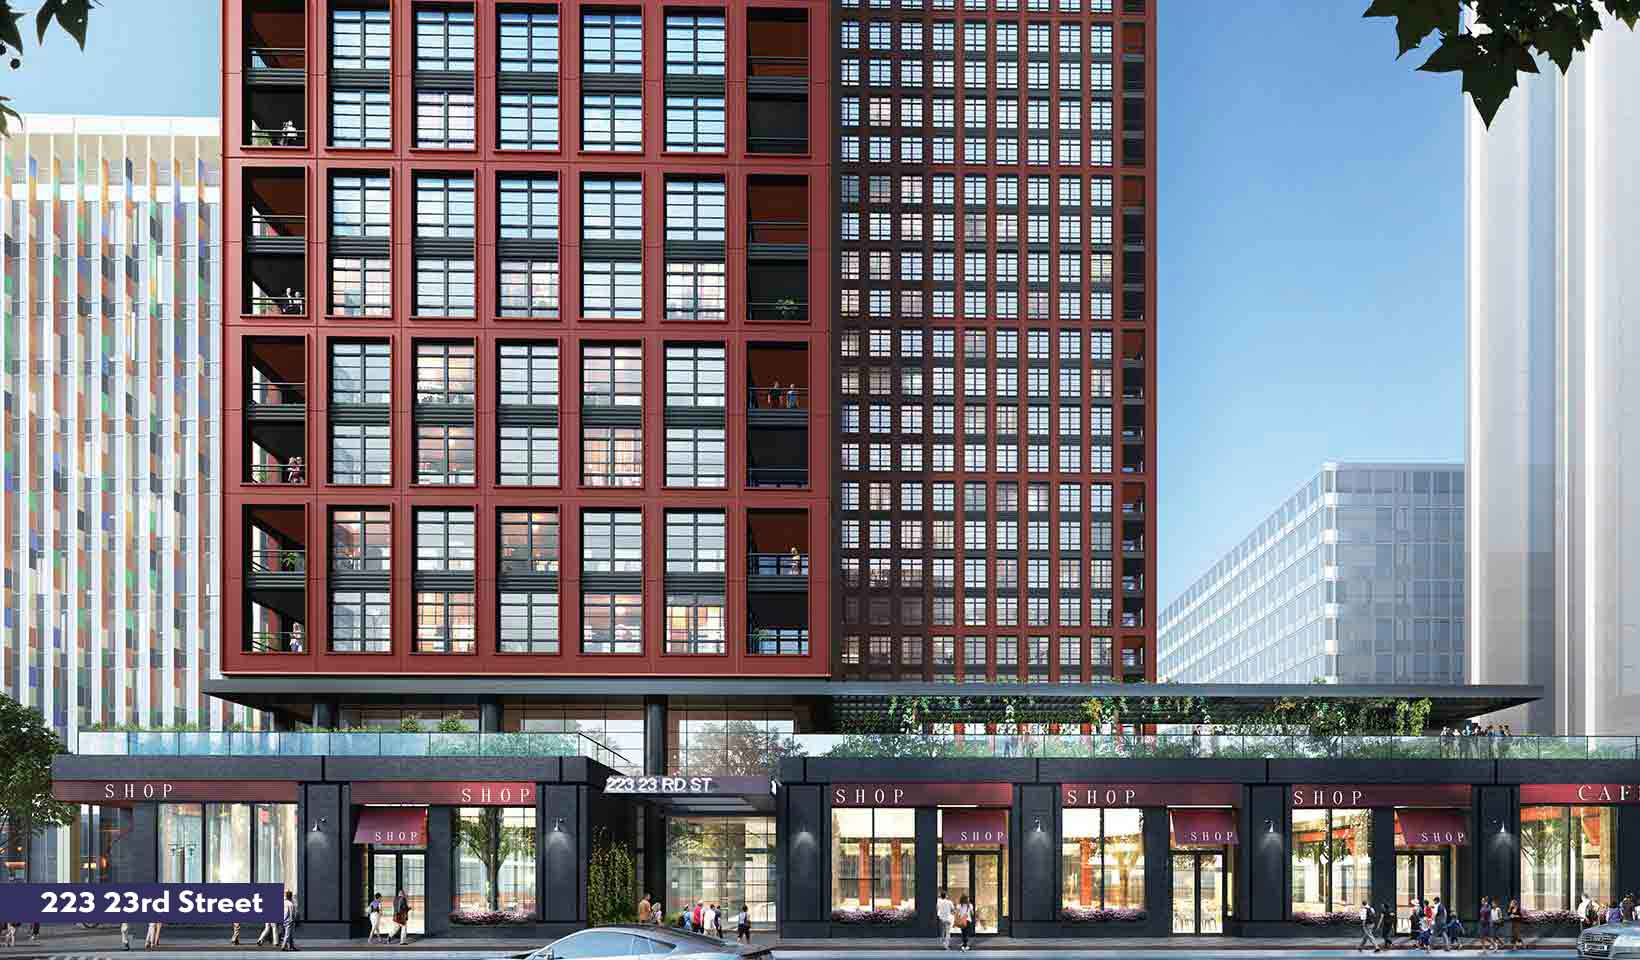 Rendering of 223 23rd Street building exterior